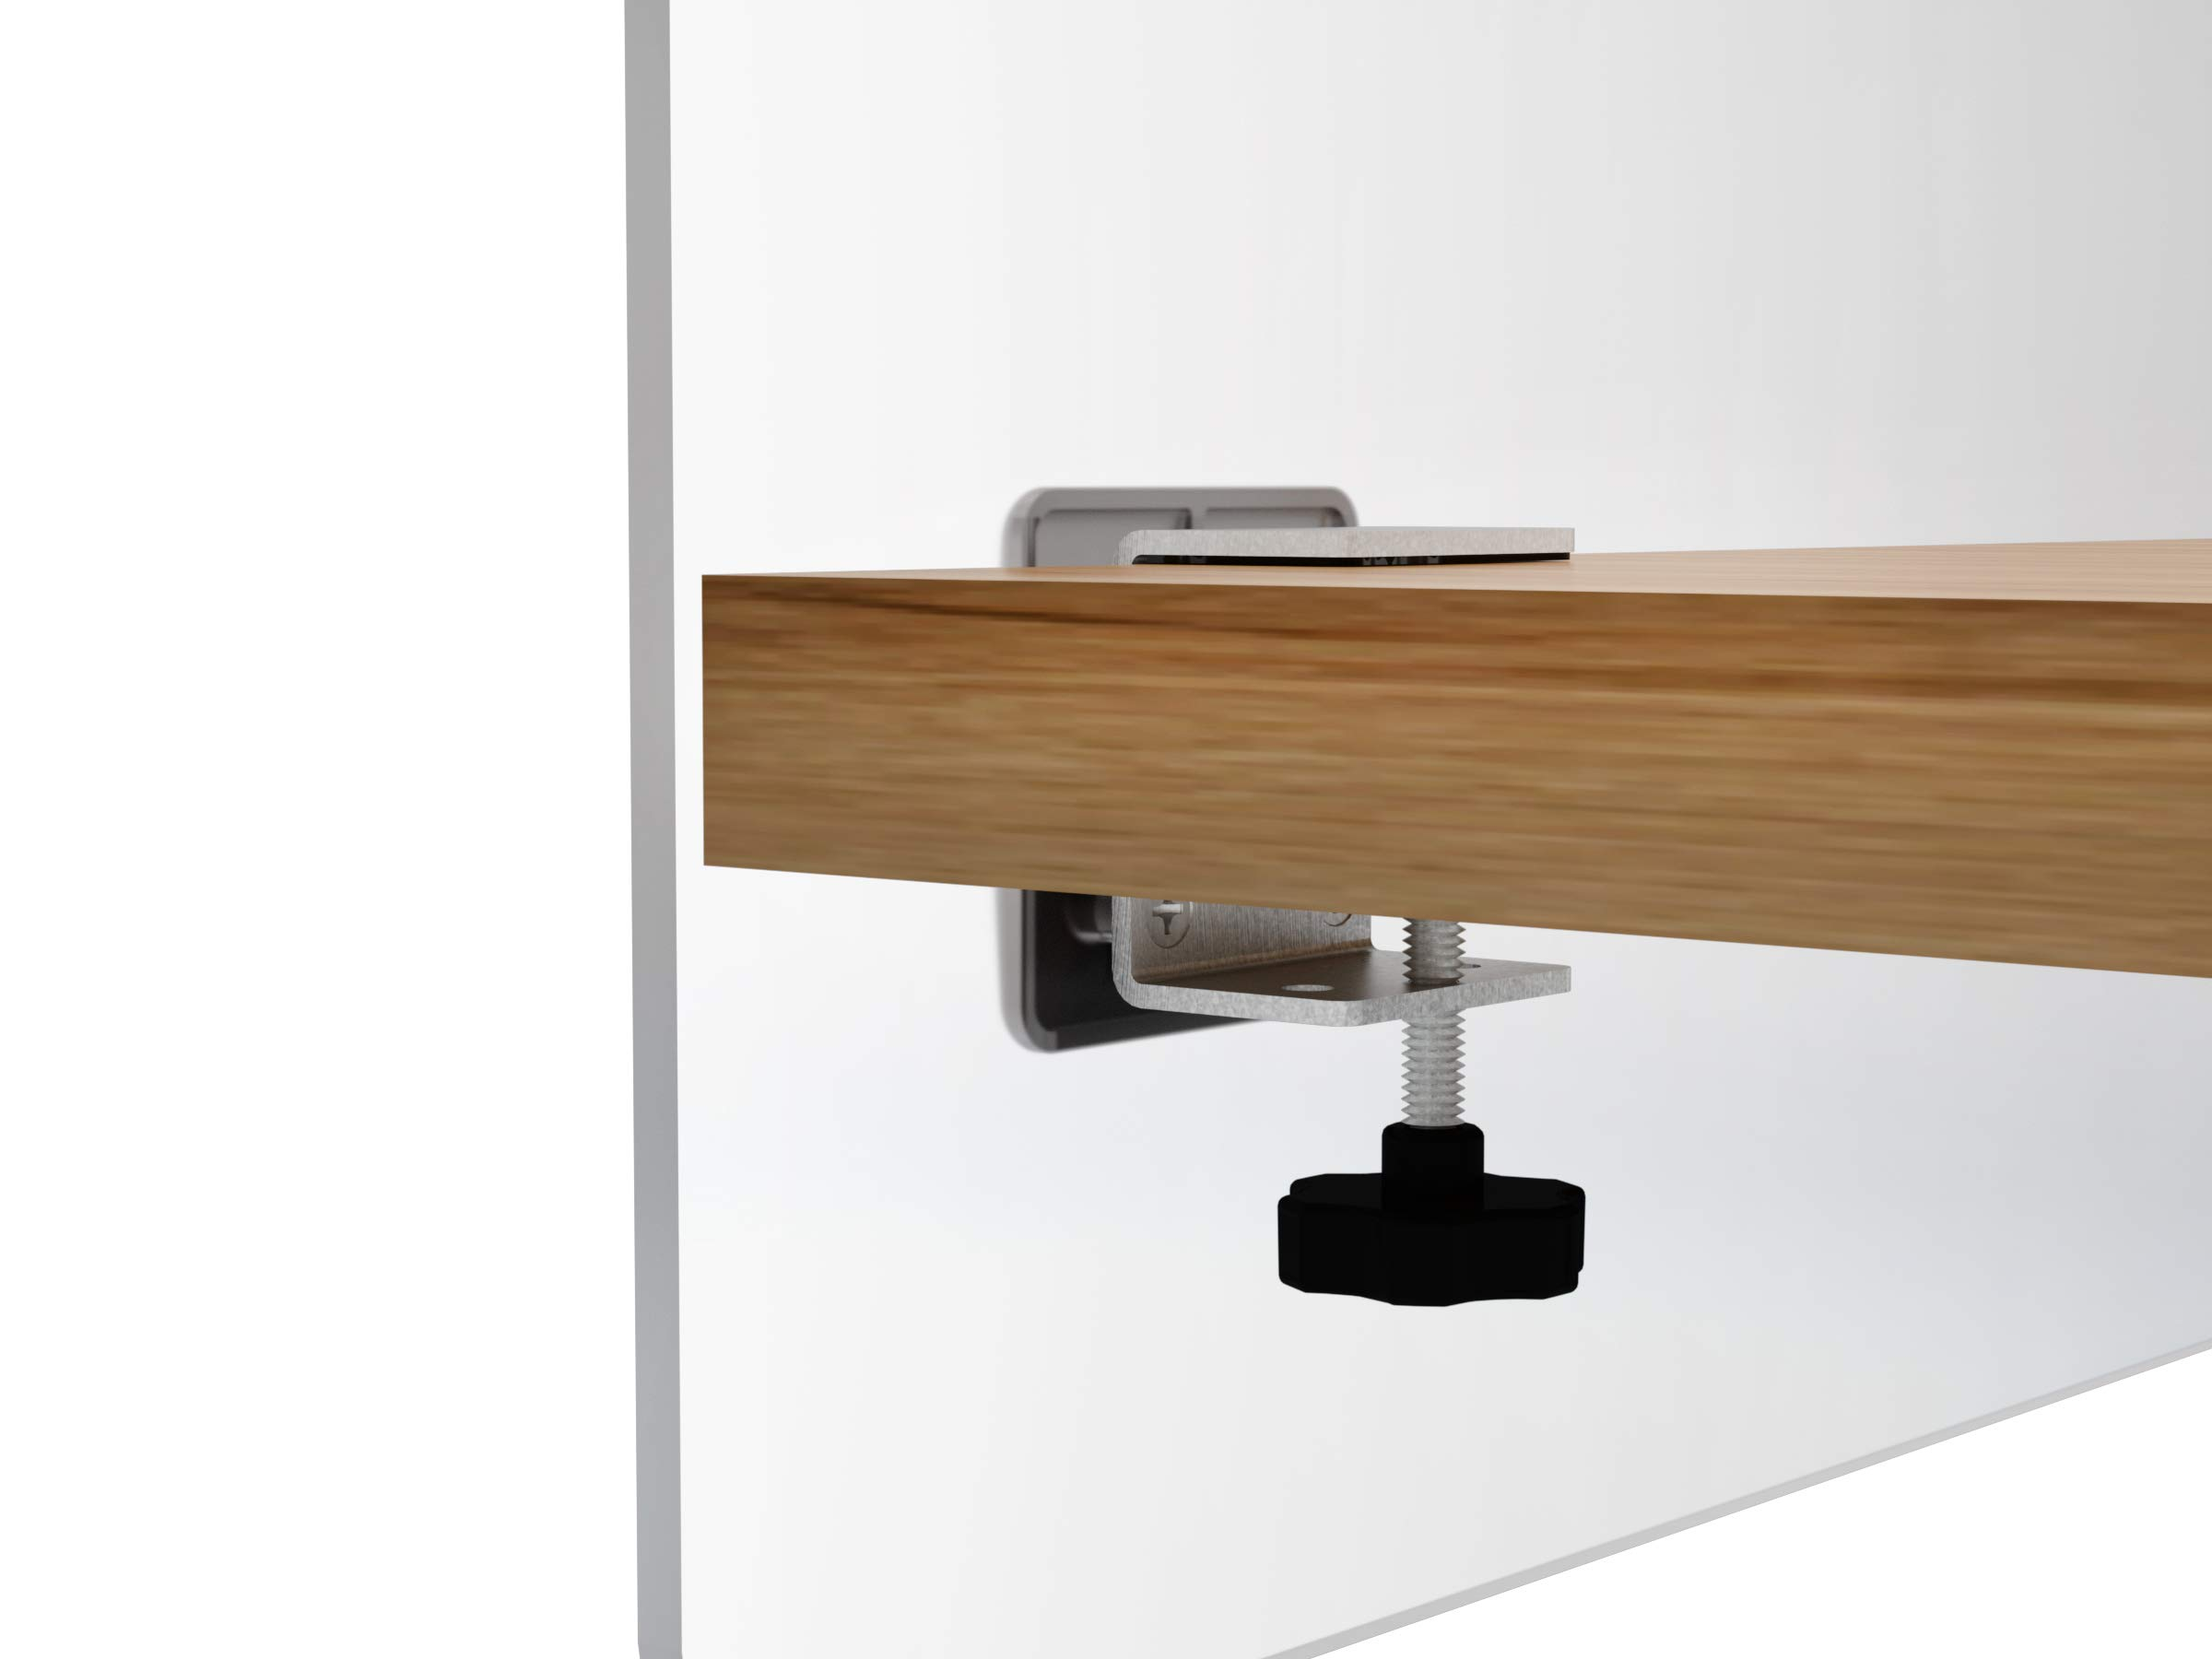 """VaRoom Privacy Partition, Frosted Acrylic Clamp-on Desk Divider – 30"""" W x 24""""H Privacy Desk Mounted Cubicle Panel by VaRoom (Image #2)"""